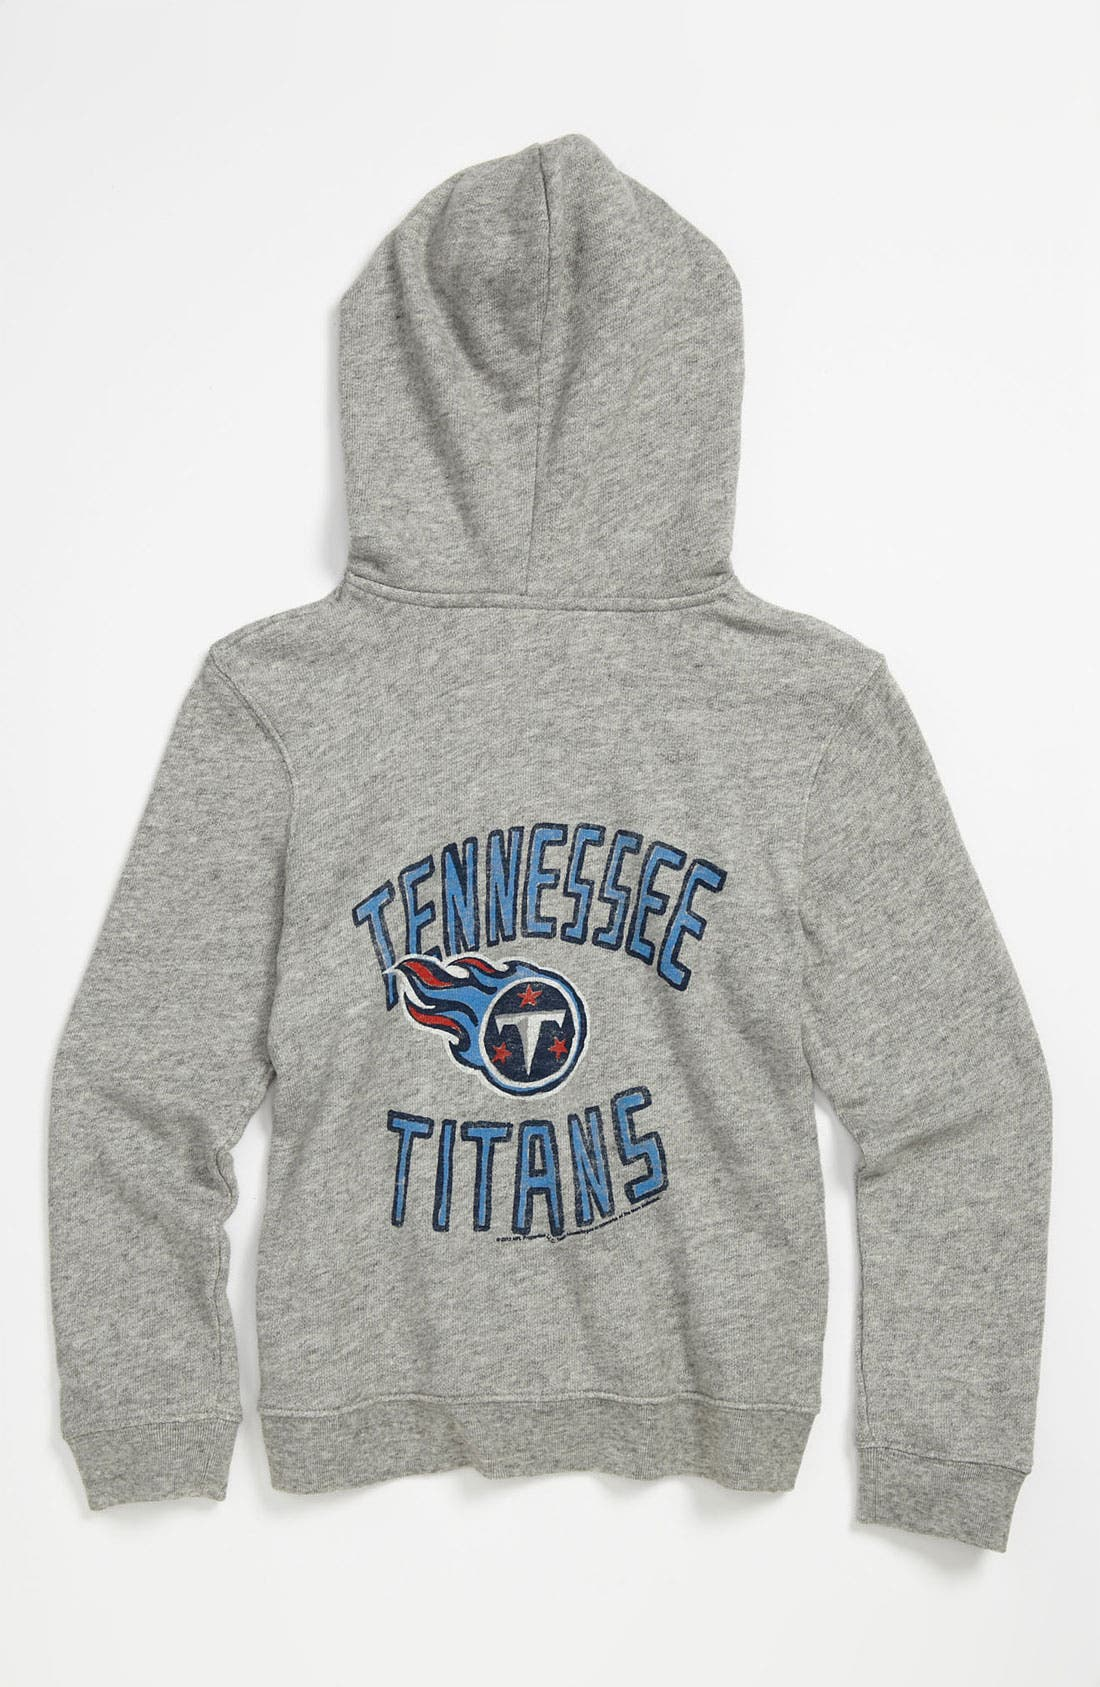 Alternate Image 1 Selected - Junk Food 'Tennessee Titans' Hoodie (Little Boys & Big Boys)